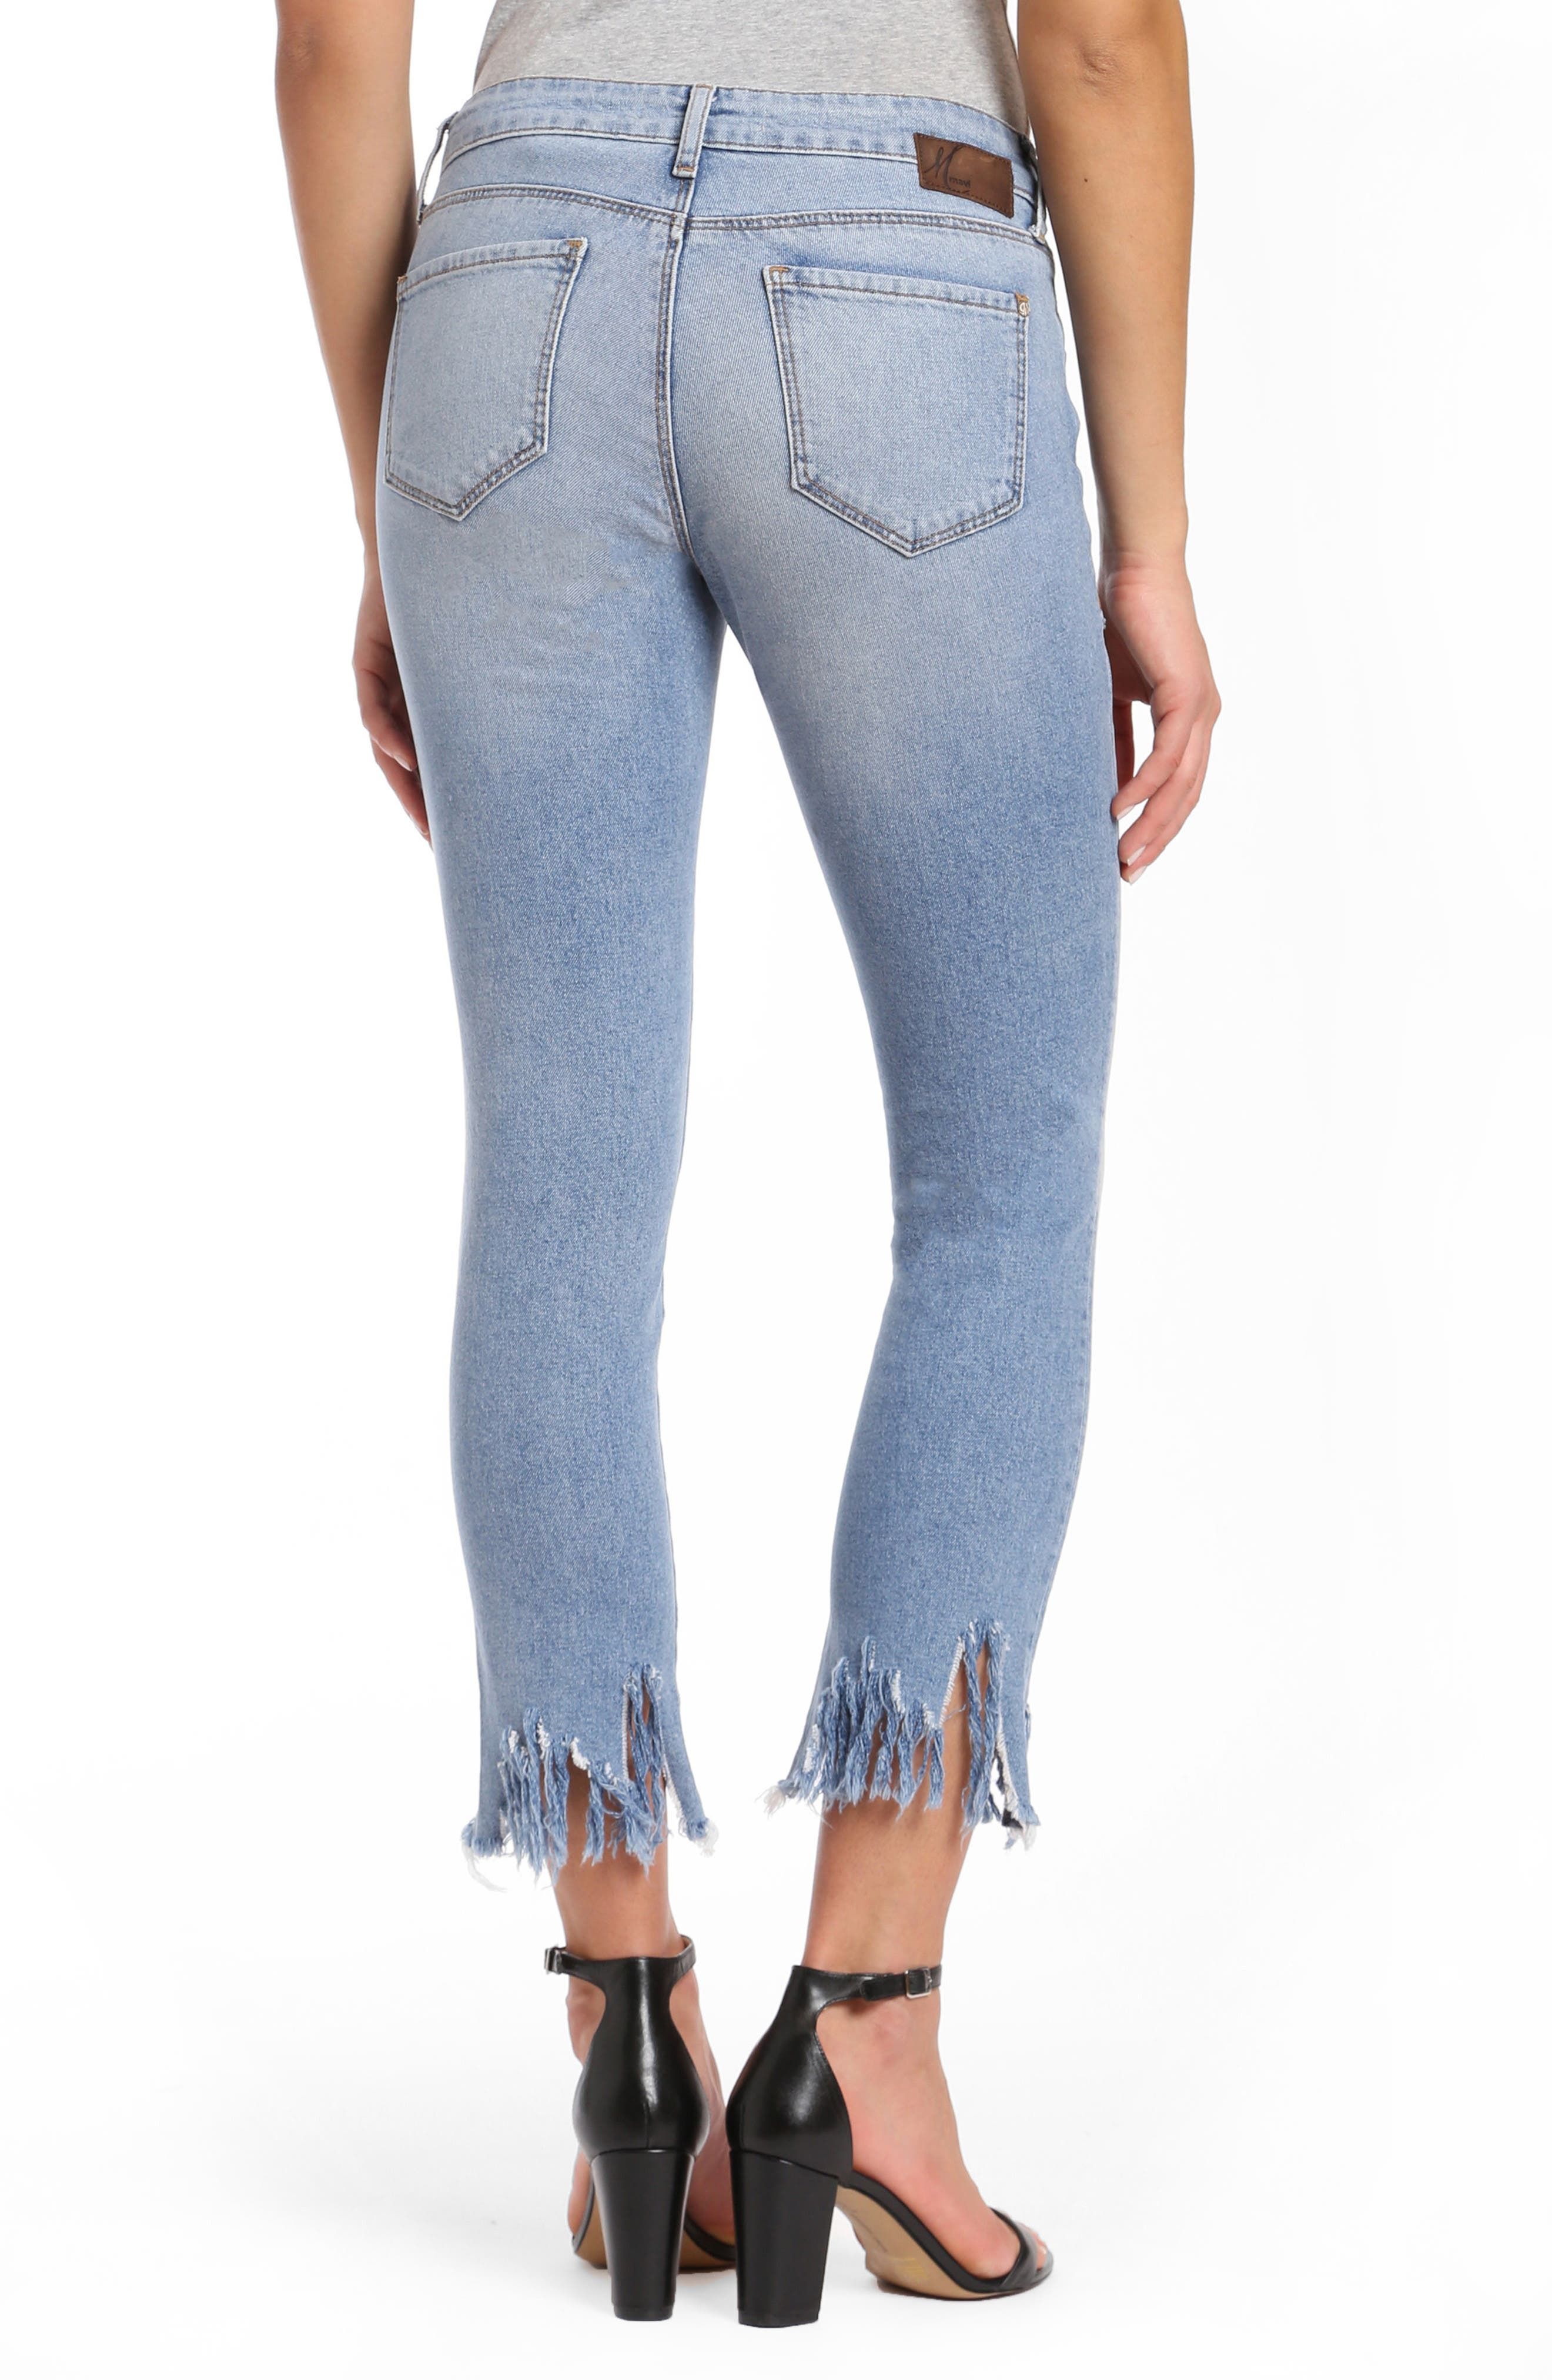 Adriana Sharkbite Fringe Super Skinny Jeans,                             Alternate thumbnail 2, color,                             LIGHT FRINGE 90S